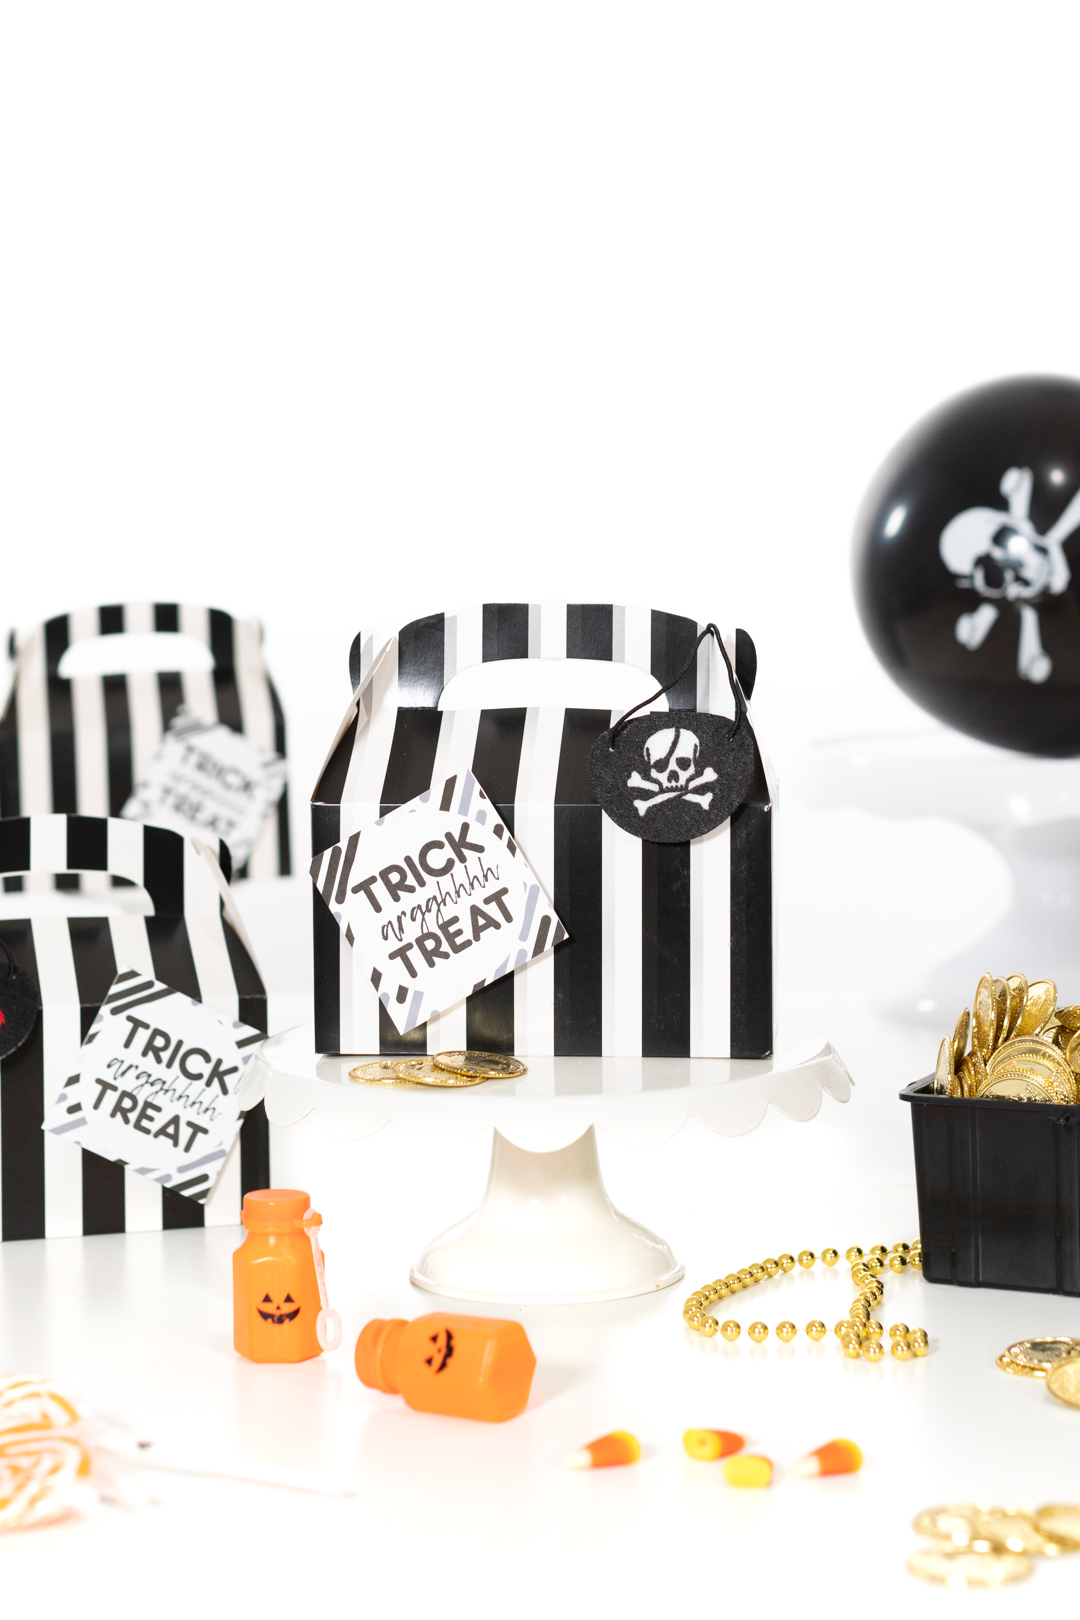 pirate favor boxes, black and white striped with gift tag on them that says trick arrgghh treat on it. Cute for Halloween door drops.